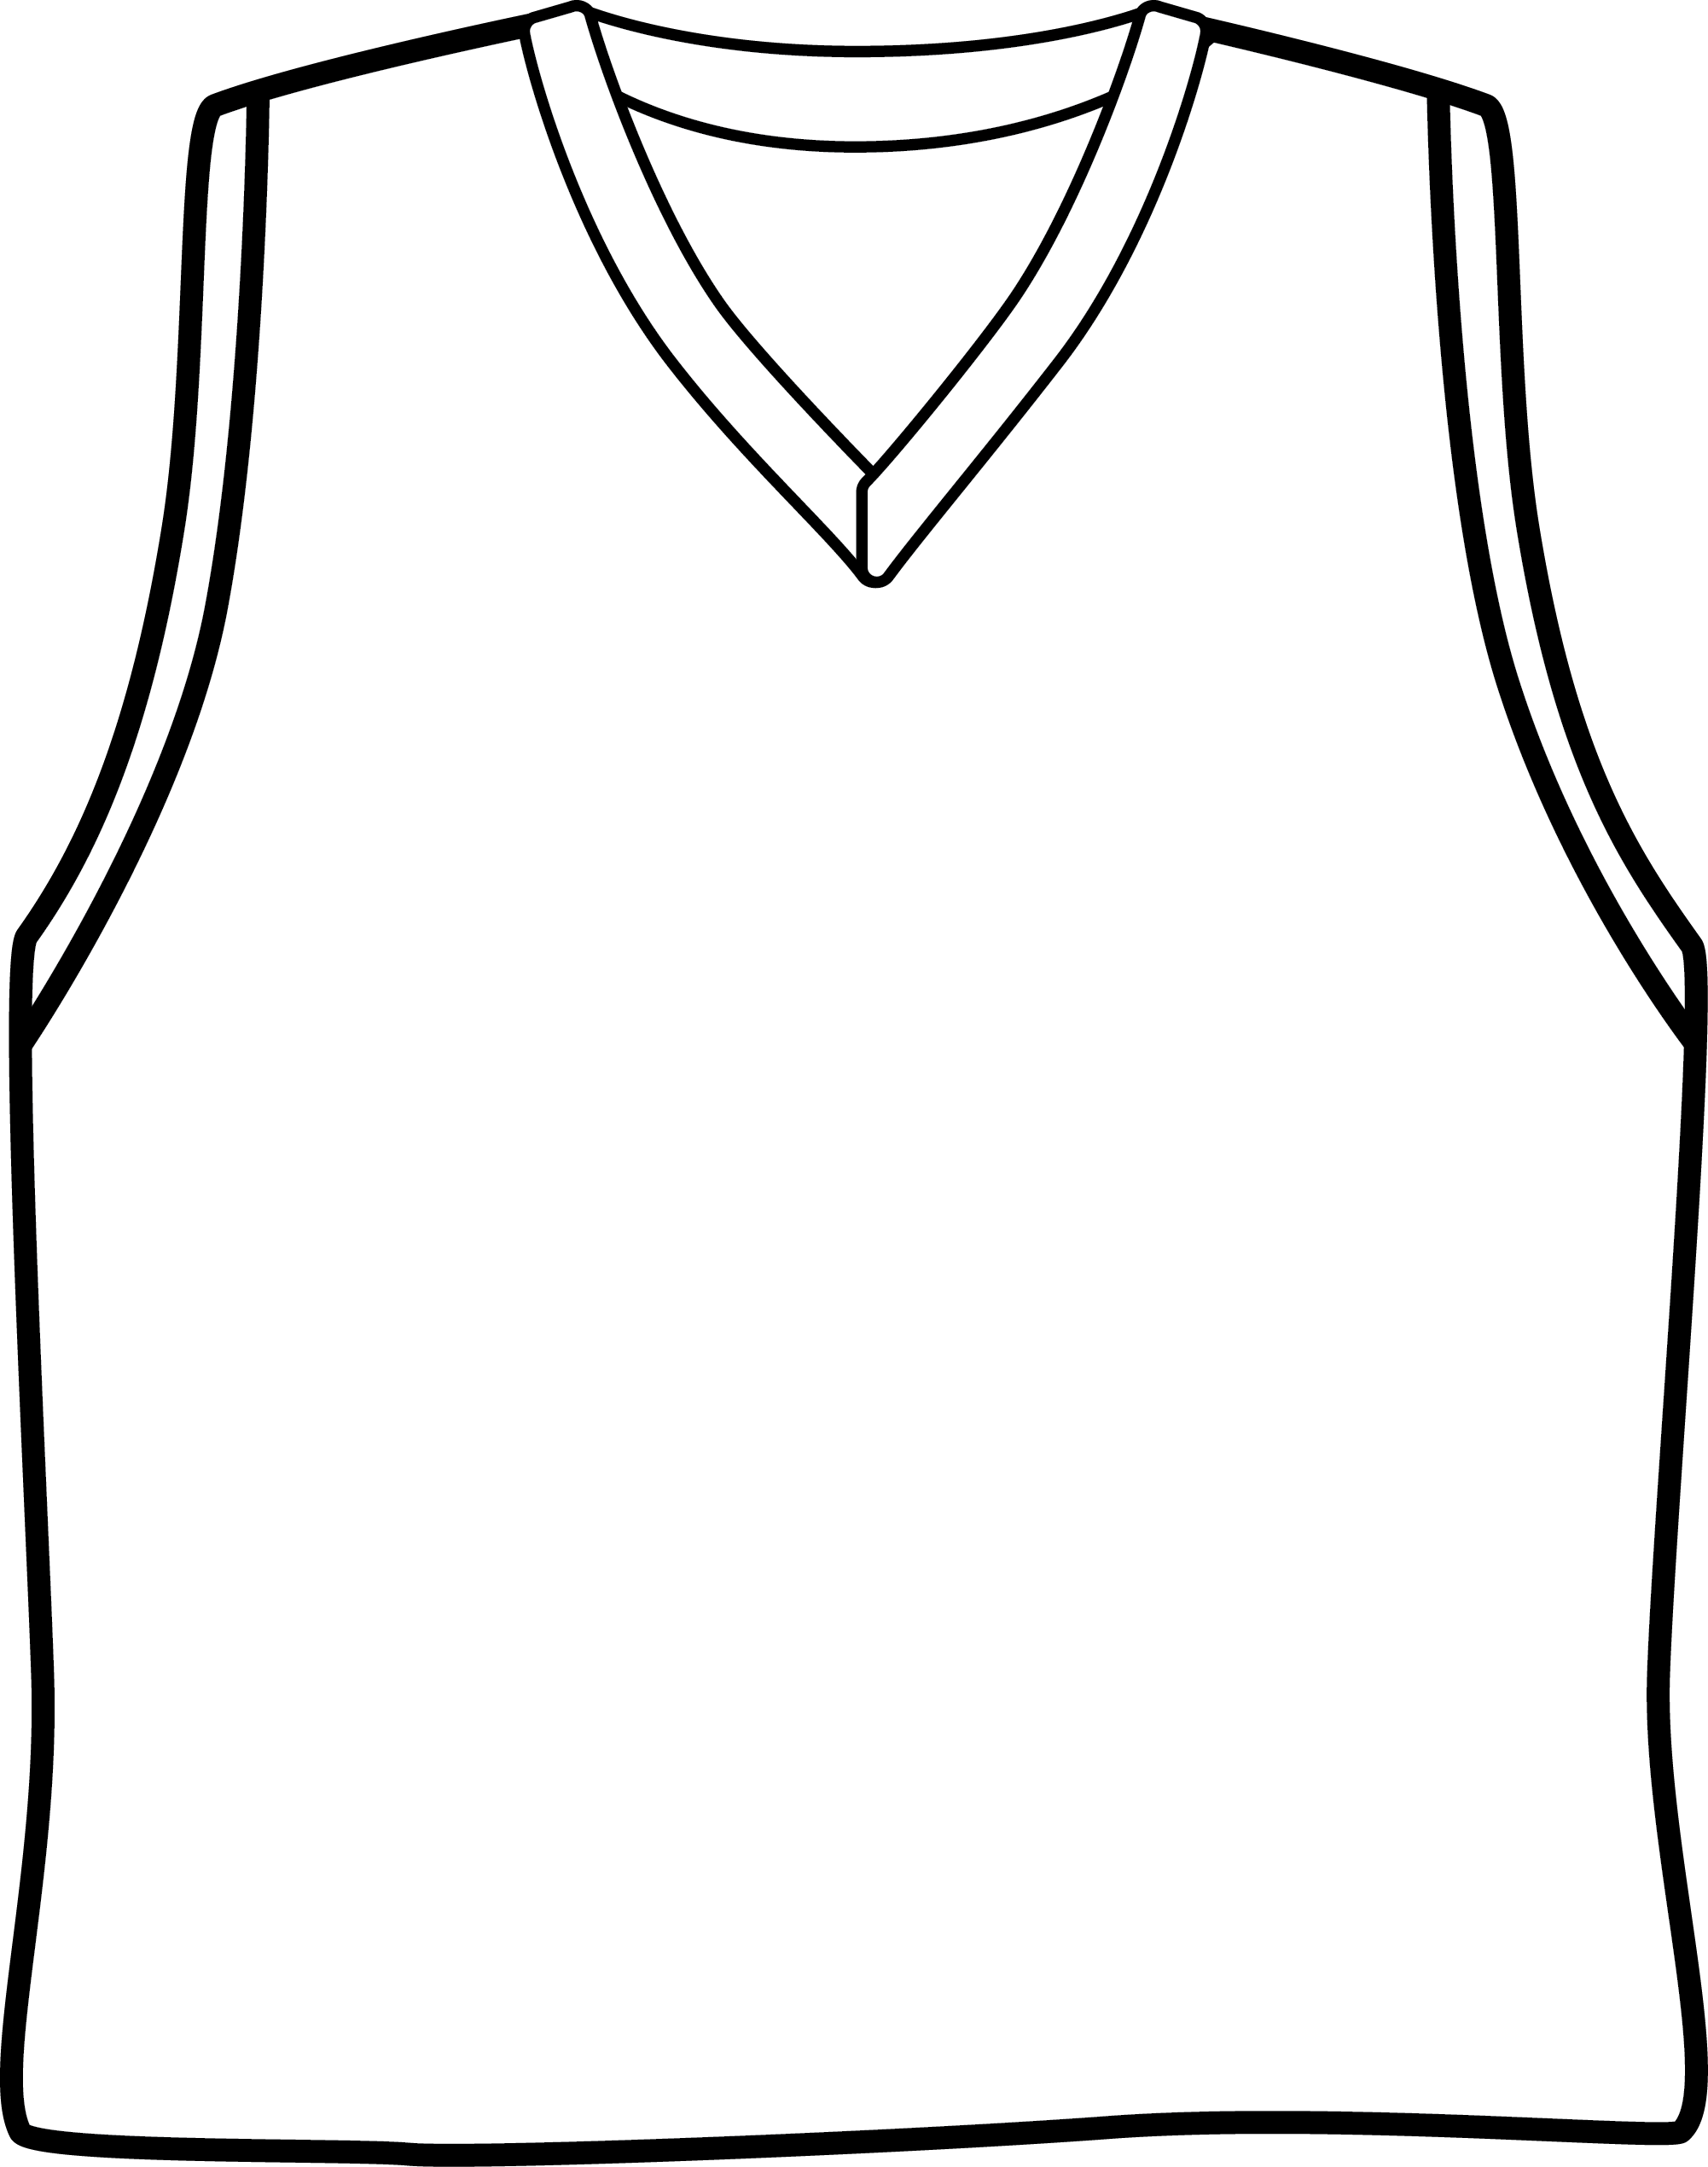 Basketball - JersEase.